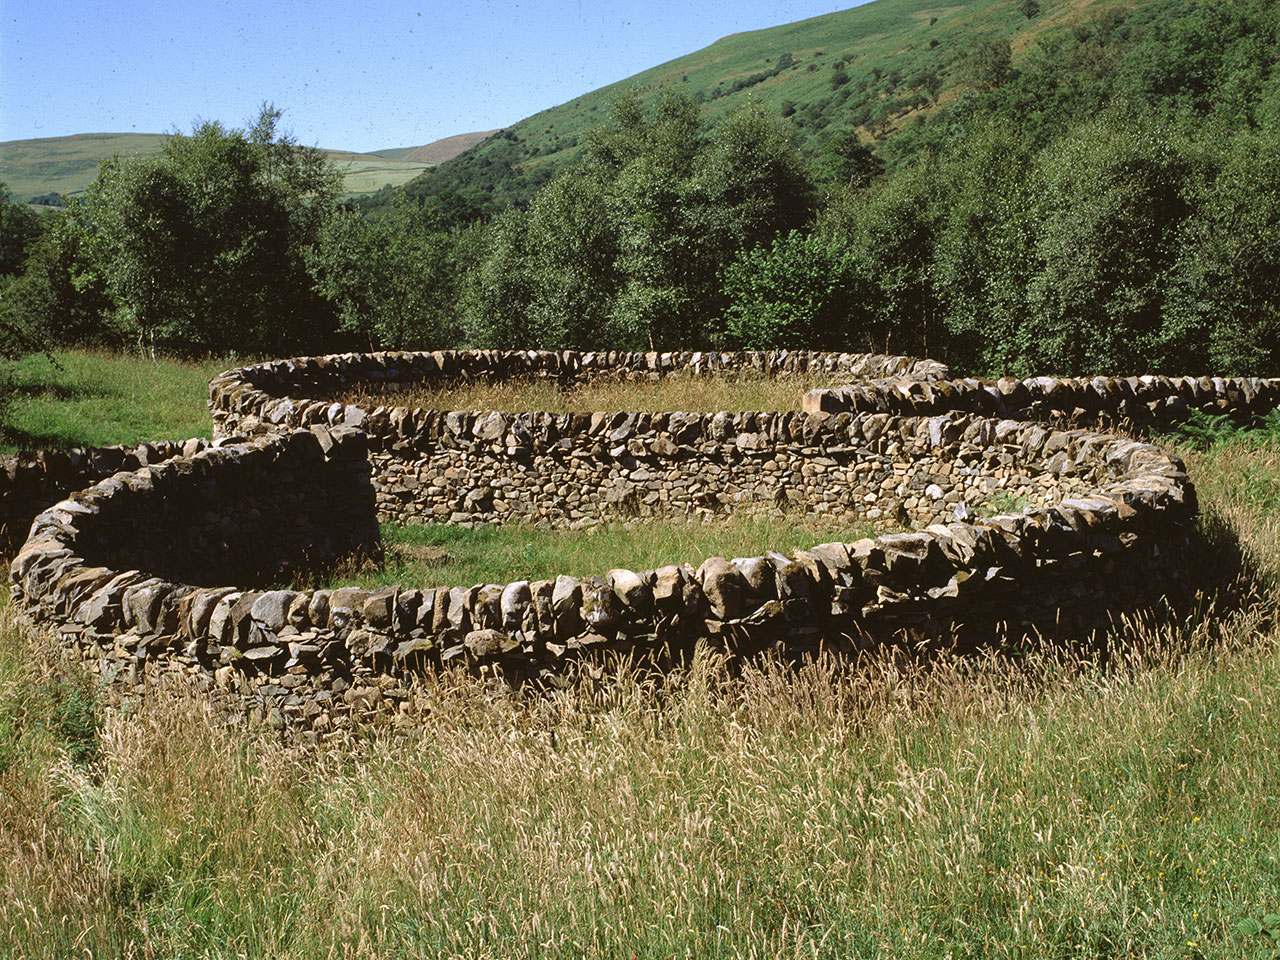 Give and Take Wall - Andy Goldsworthy